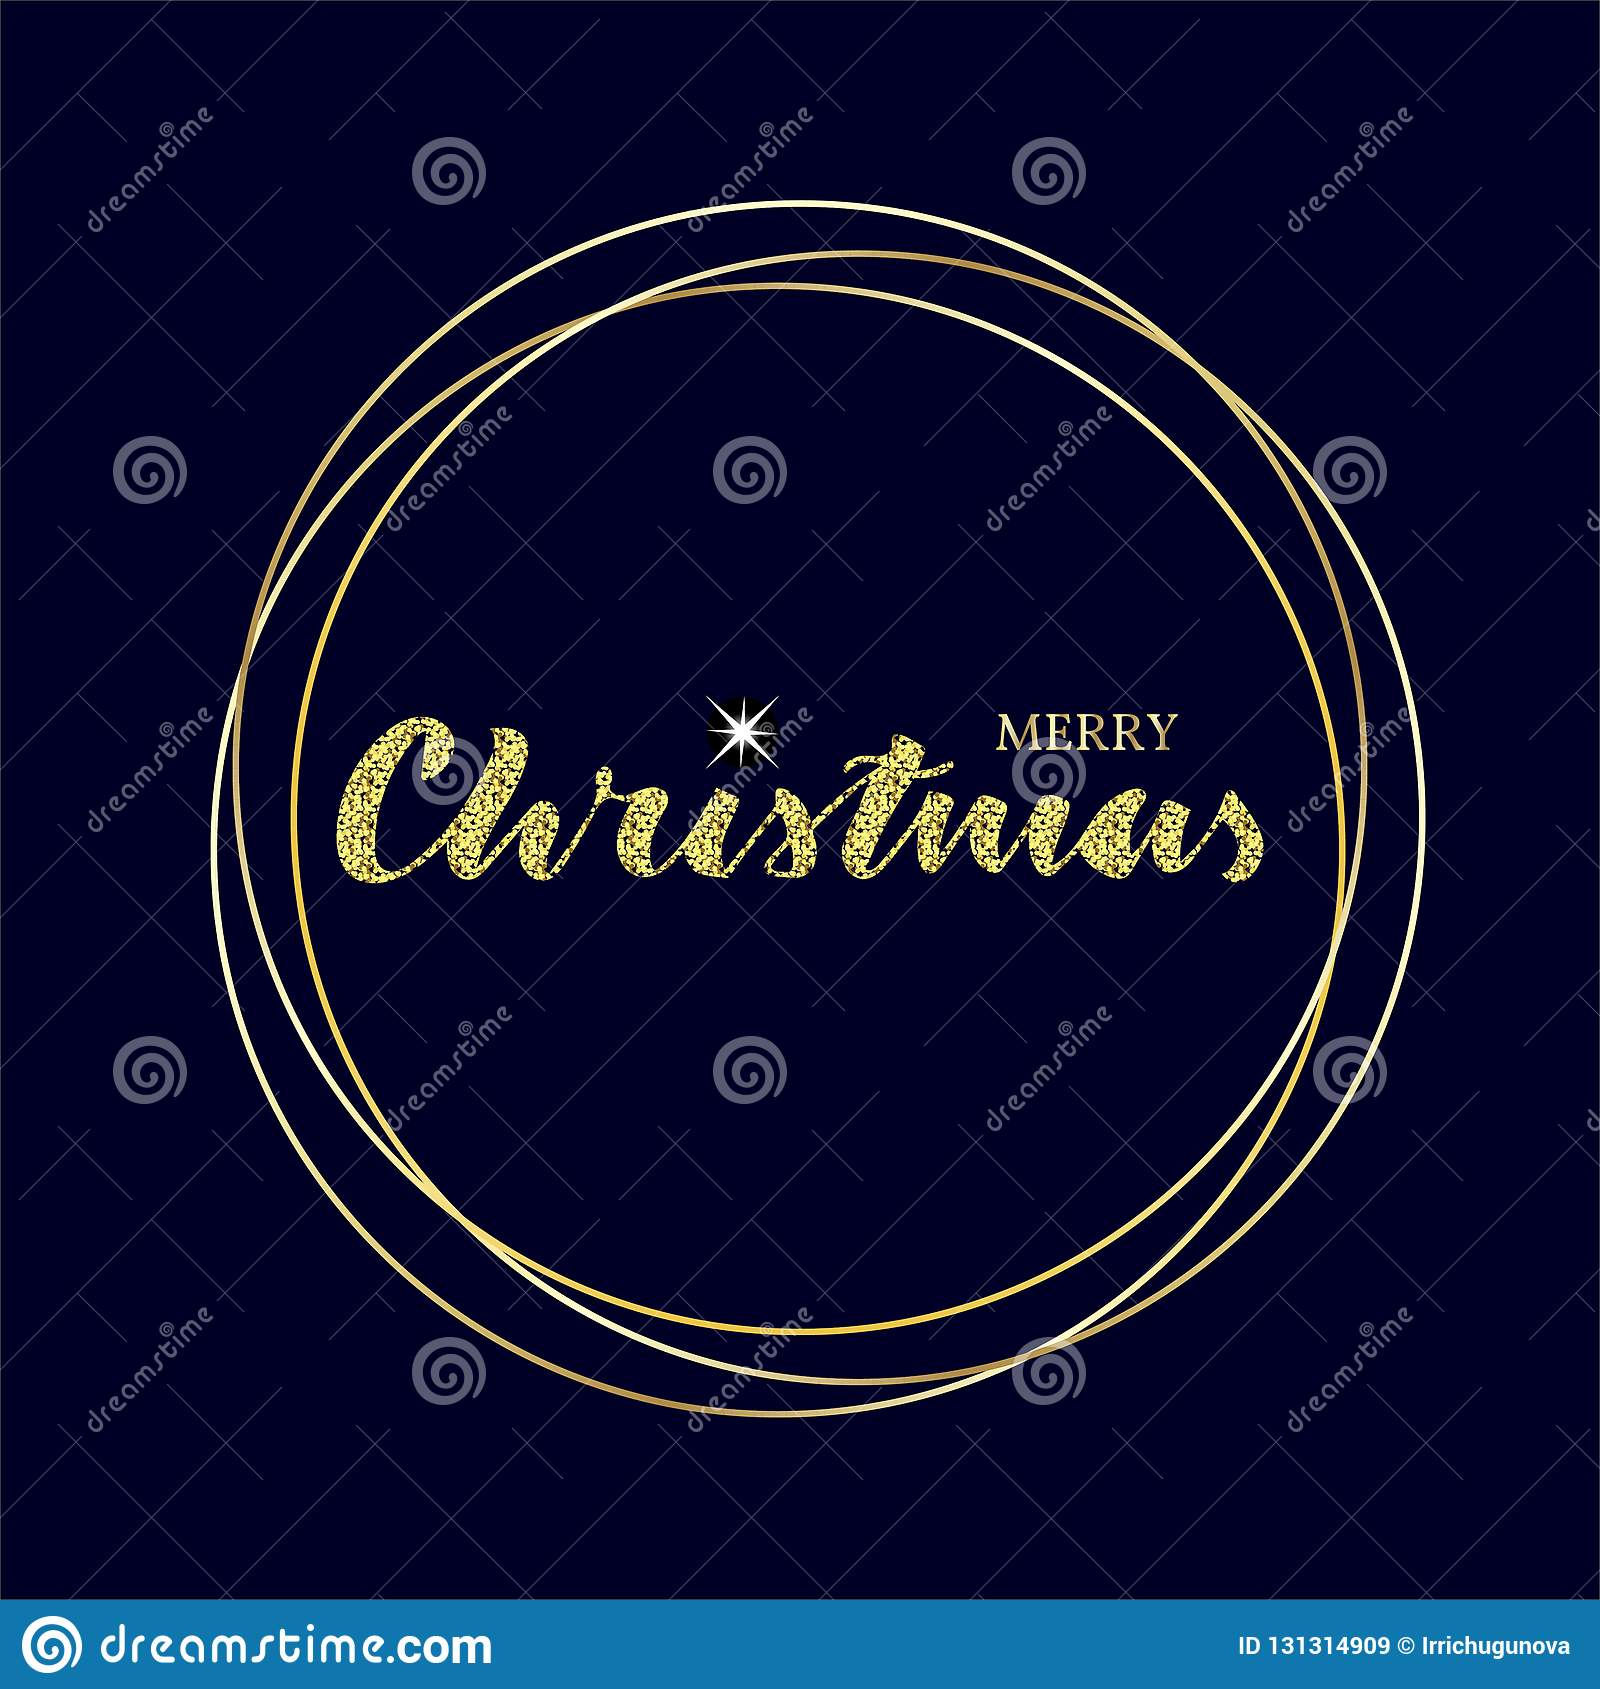 Merry christmas lettering with sparkle star and golden circles